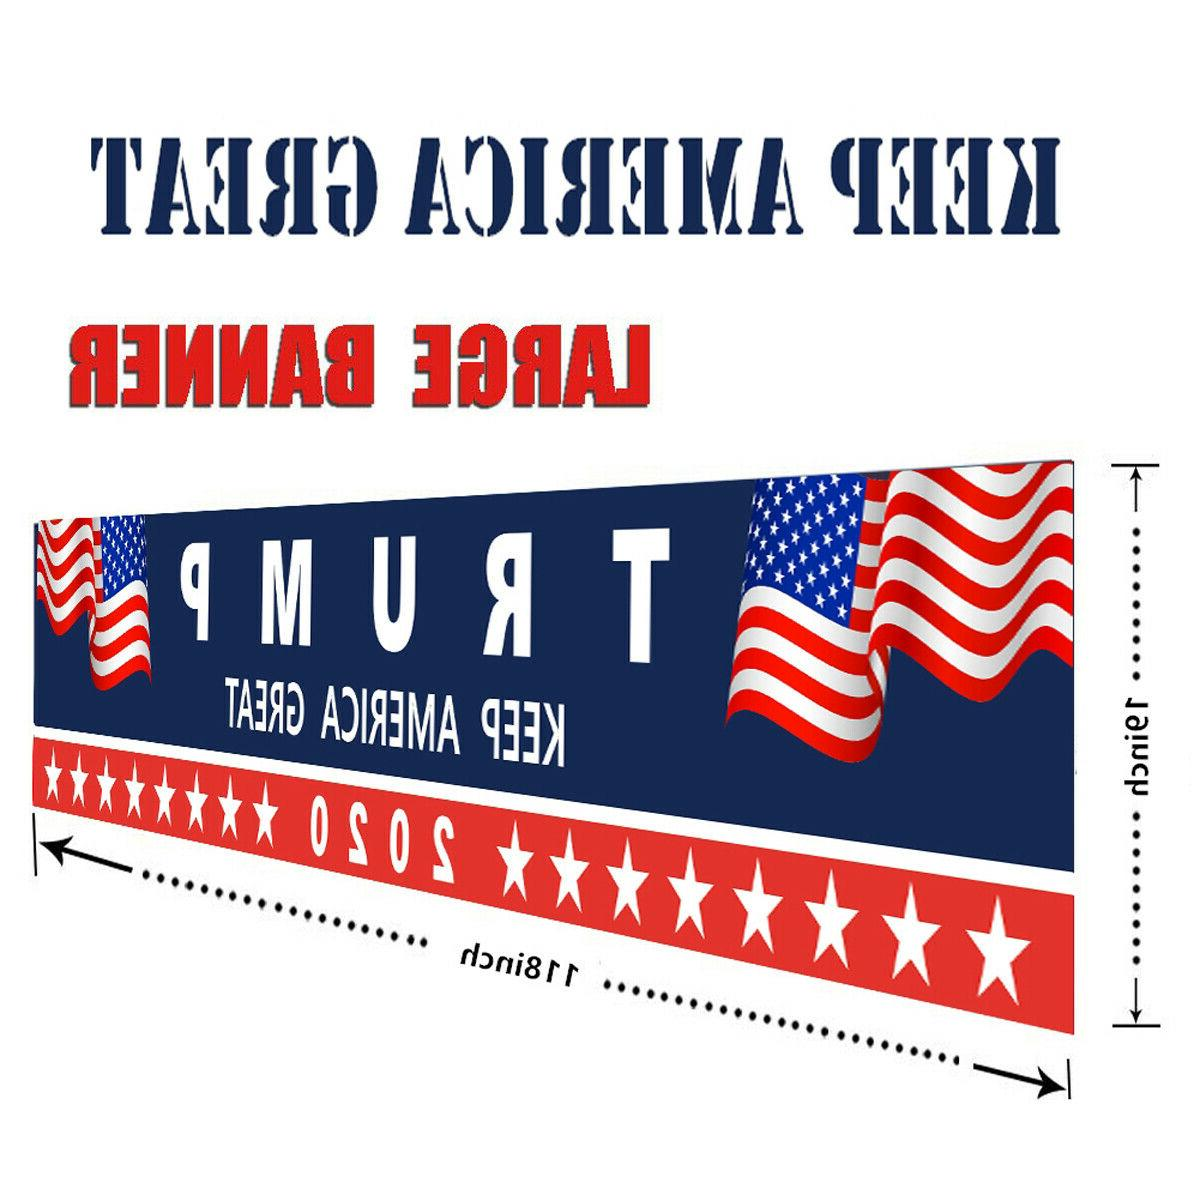 Trump Garden Sign for Home House Lawn Sign